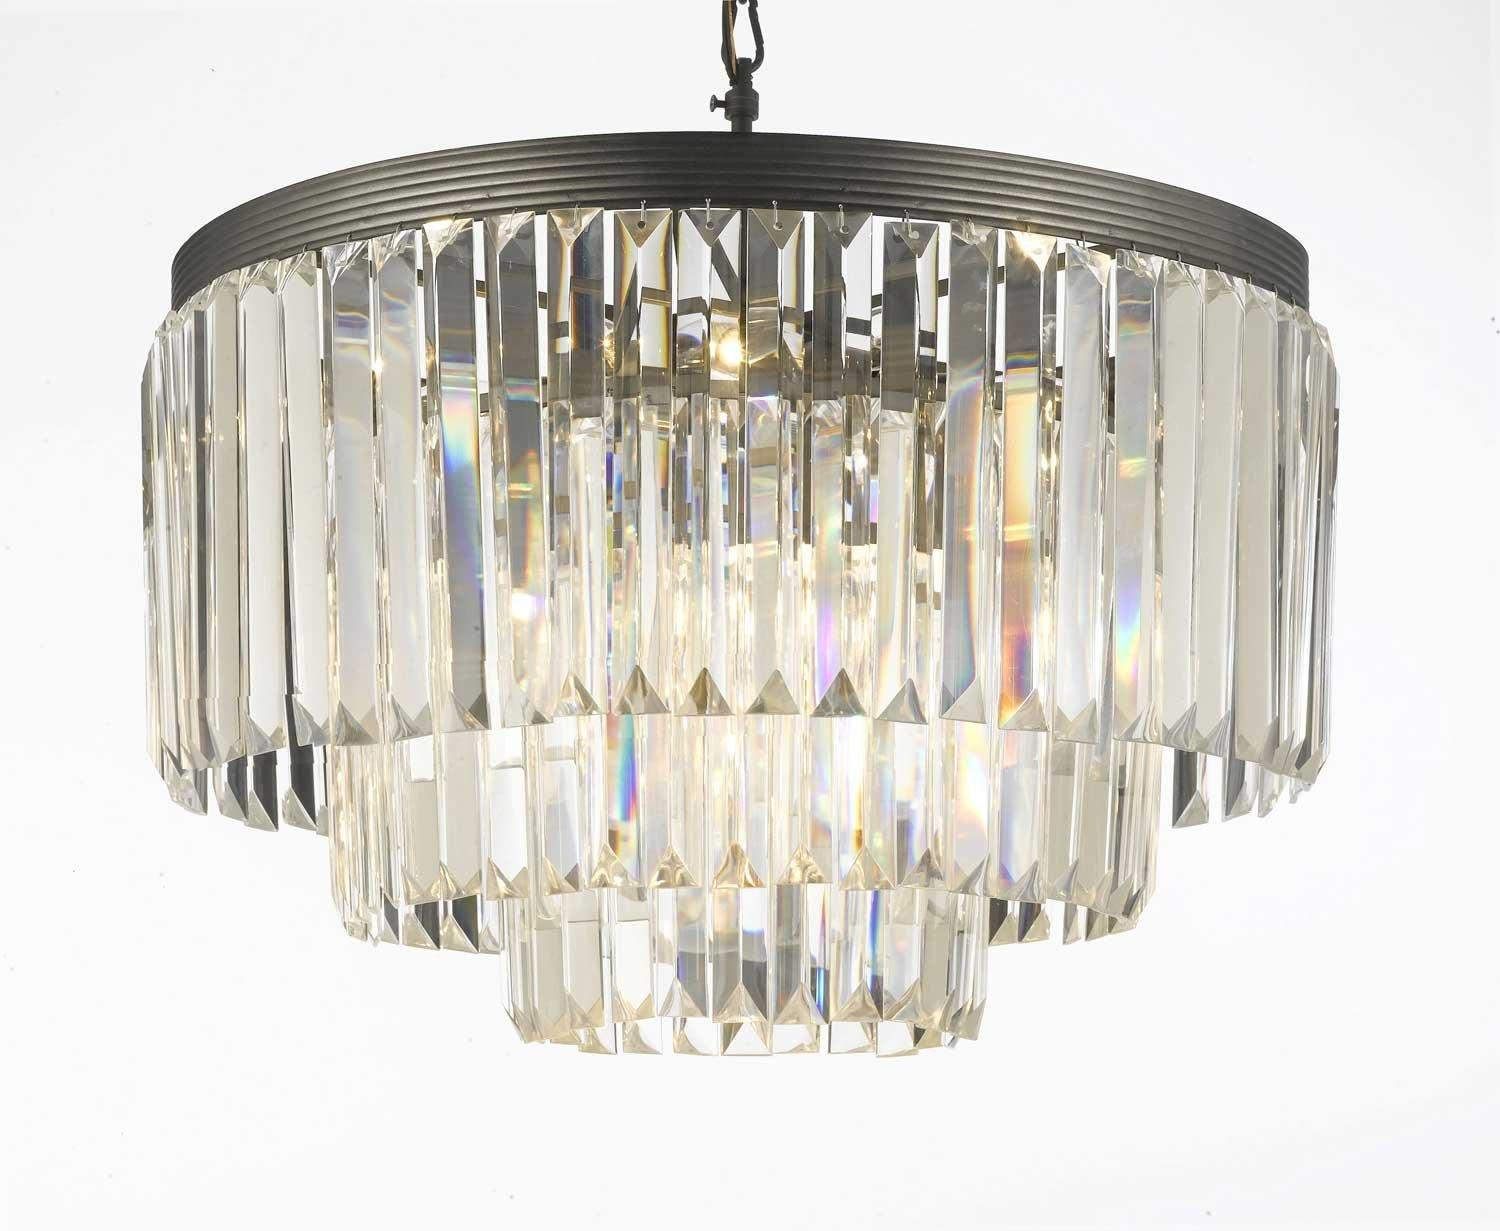 Odeon Crystal Glass Fringe 3 -Tier Chandelier Lighting